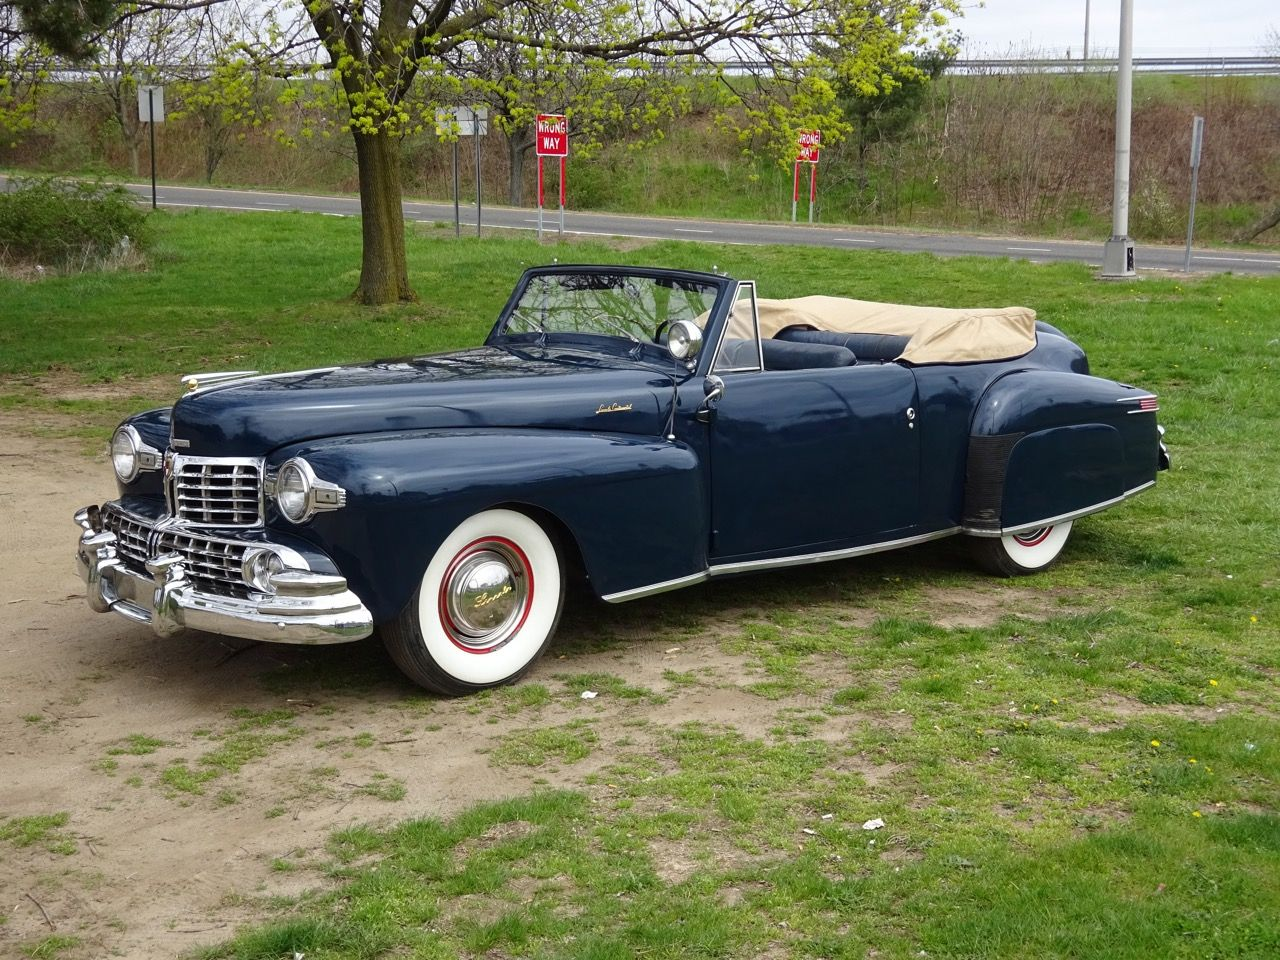 1959 lincoln continental convertible submited images pic2fly - 1947 Lincoln Continental Cabriolet